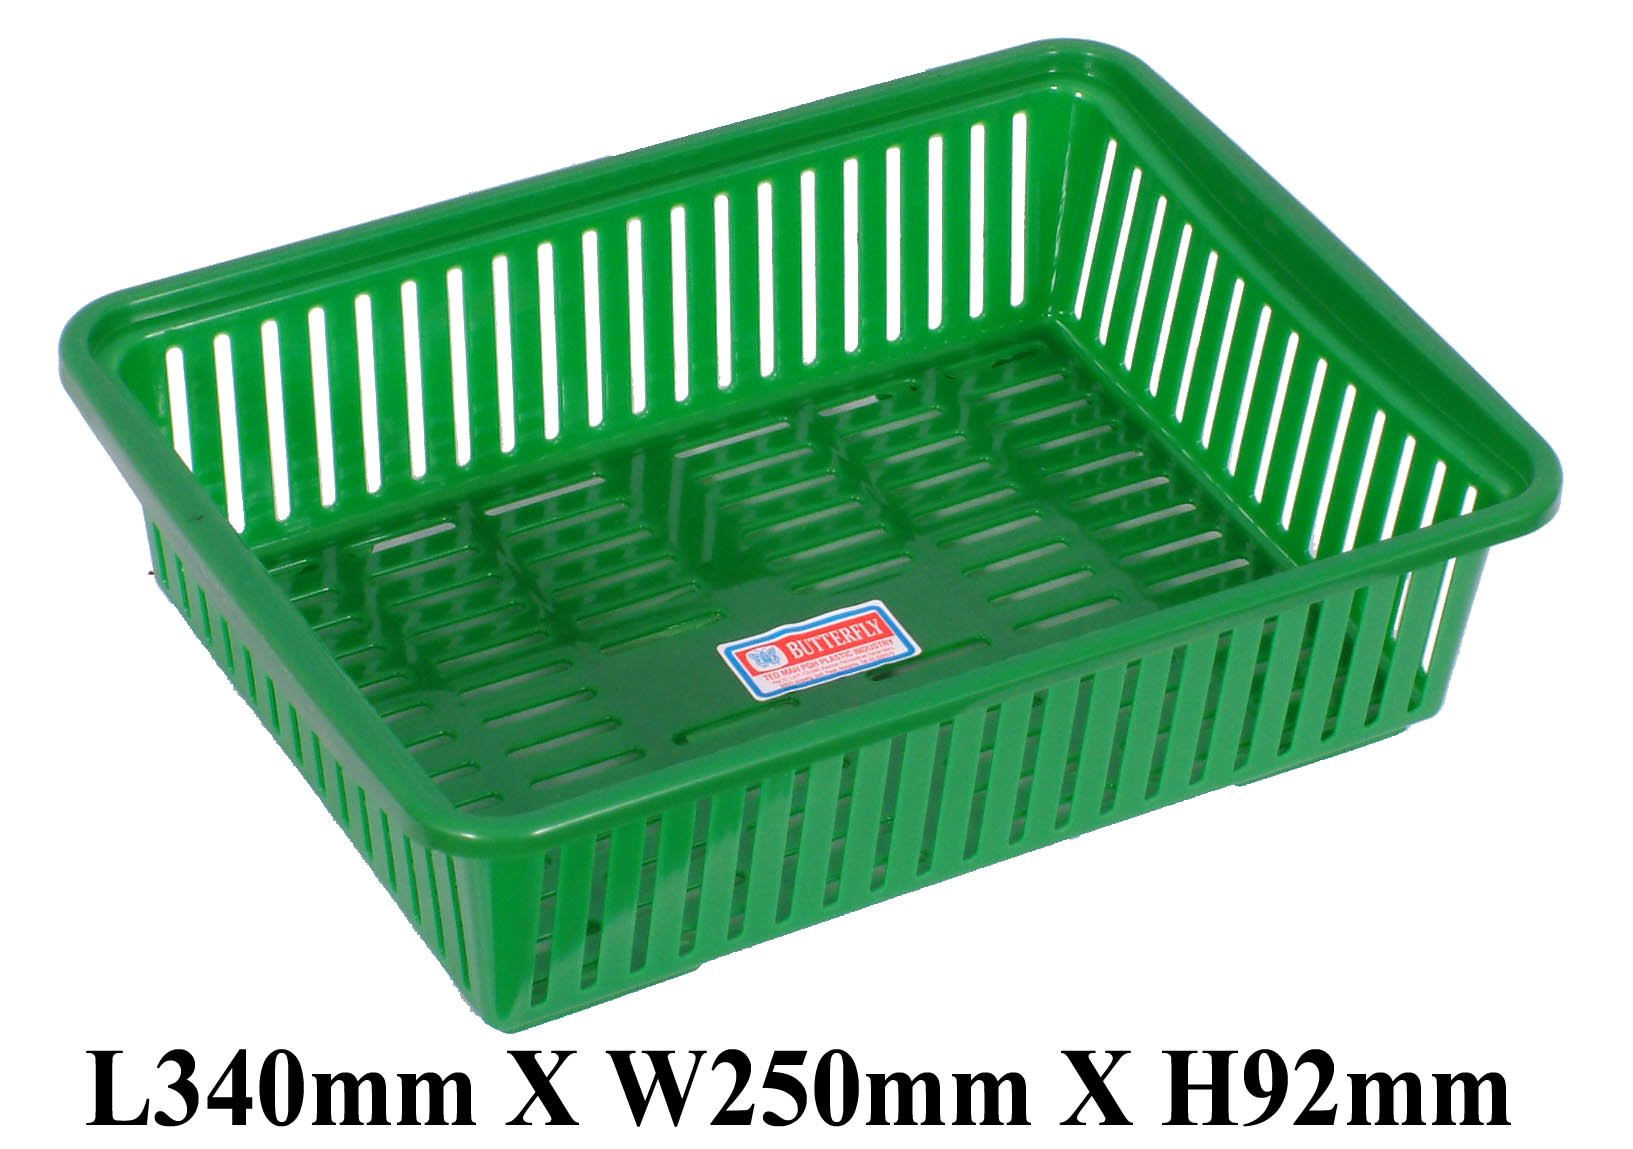 Plastic Tray Photo Detailed About Plastic Tray Picture On